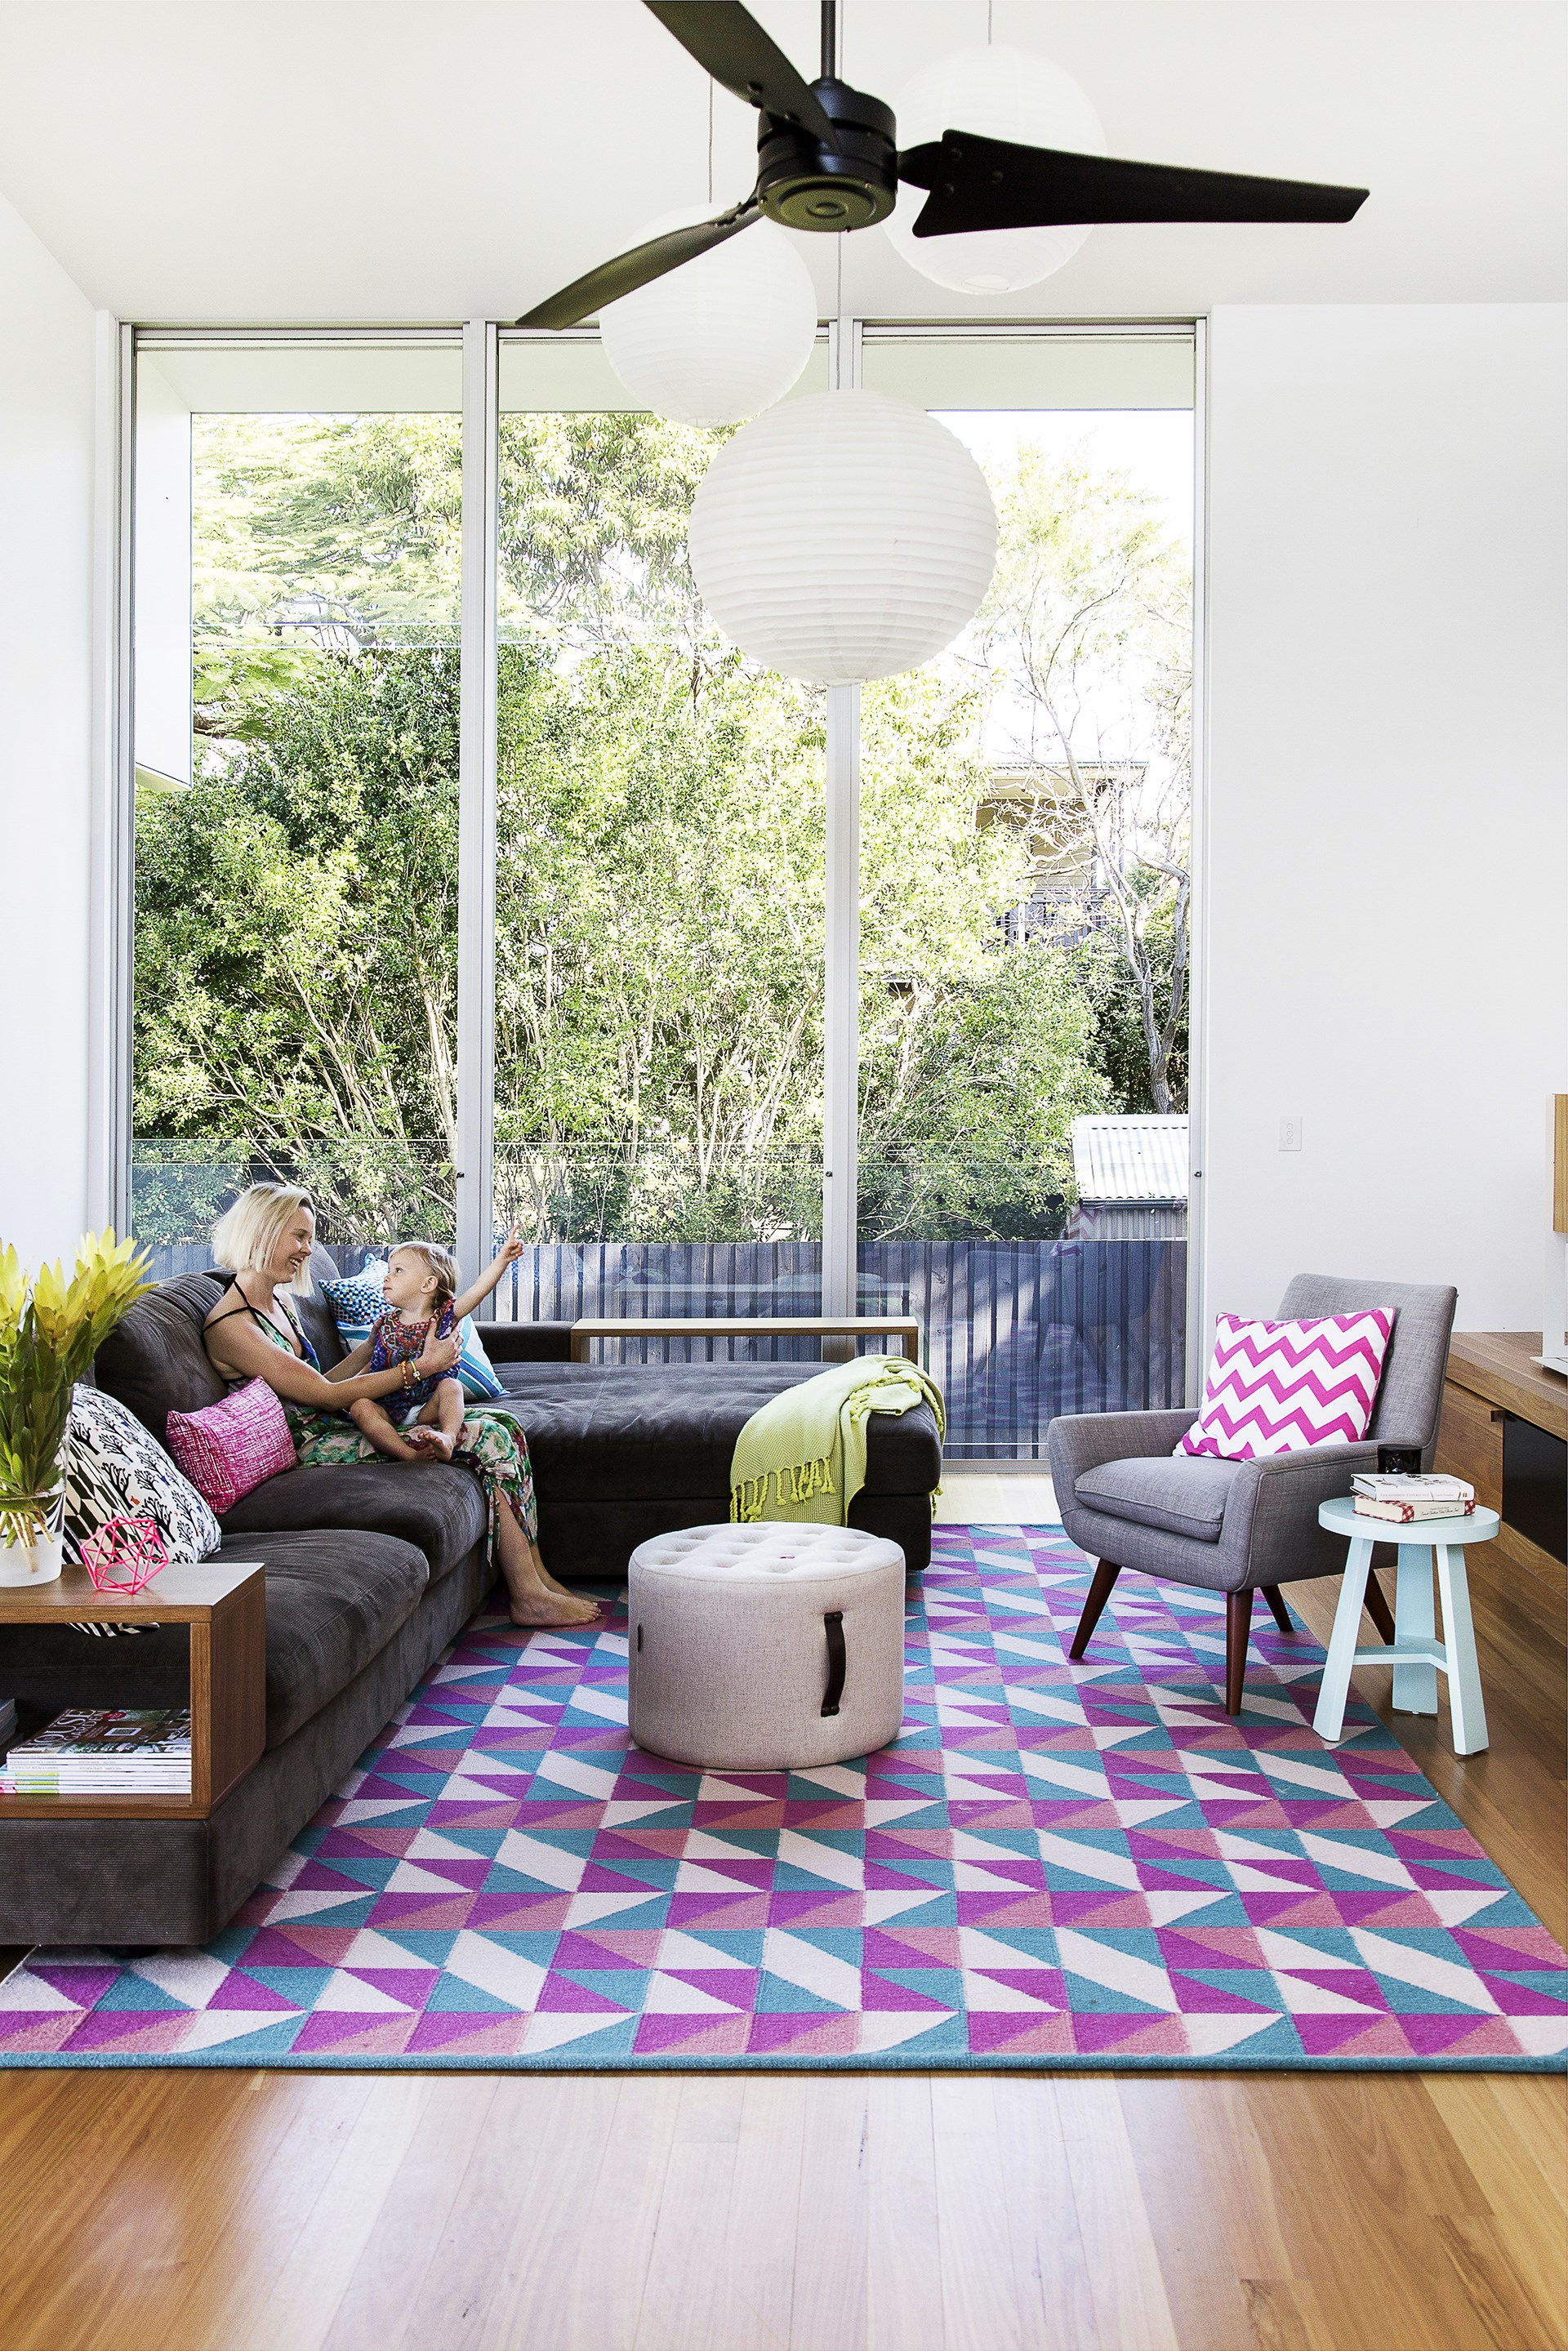 """In this living room, floor-to-ceiling, double-hung windows are shaded by wide eaves. A ceiling fan keeps the air moving on sweltering days. [Read more about this house](http://www.homestolove.com.au/laura-and-alistairs-contemporary-family-home-1720